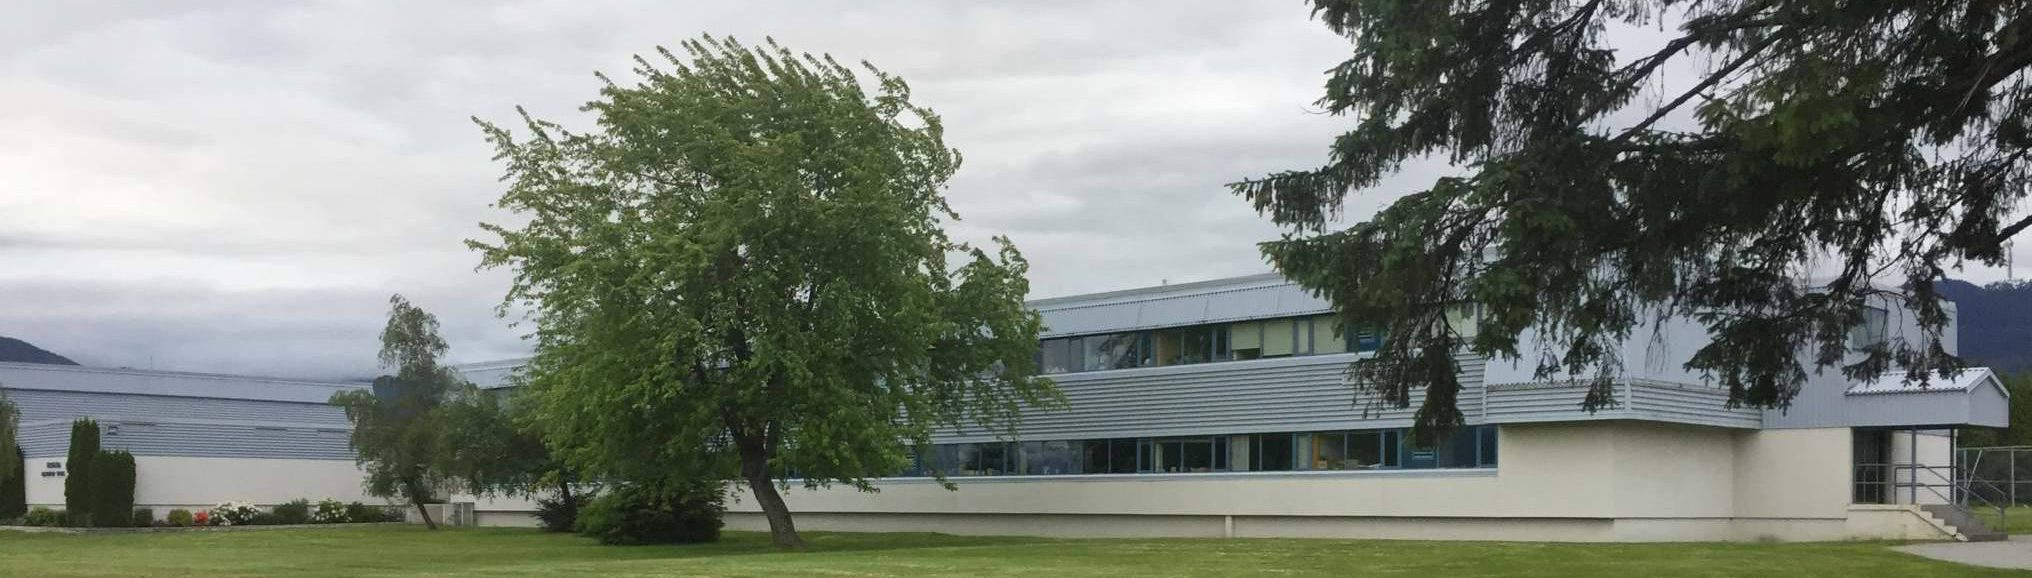 side view of a school building with trees in forefront